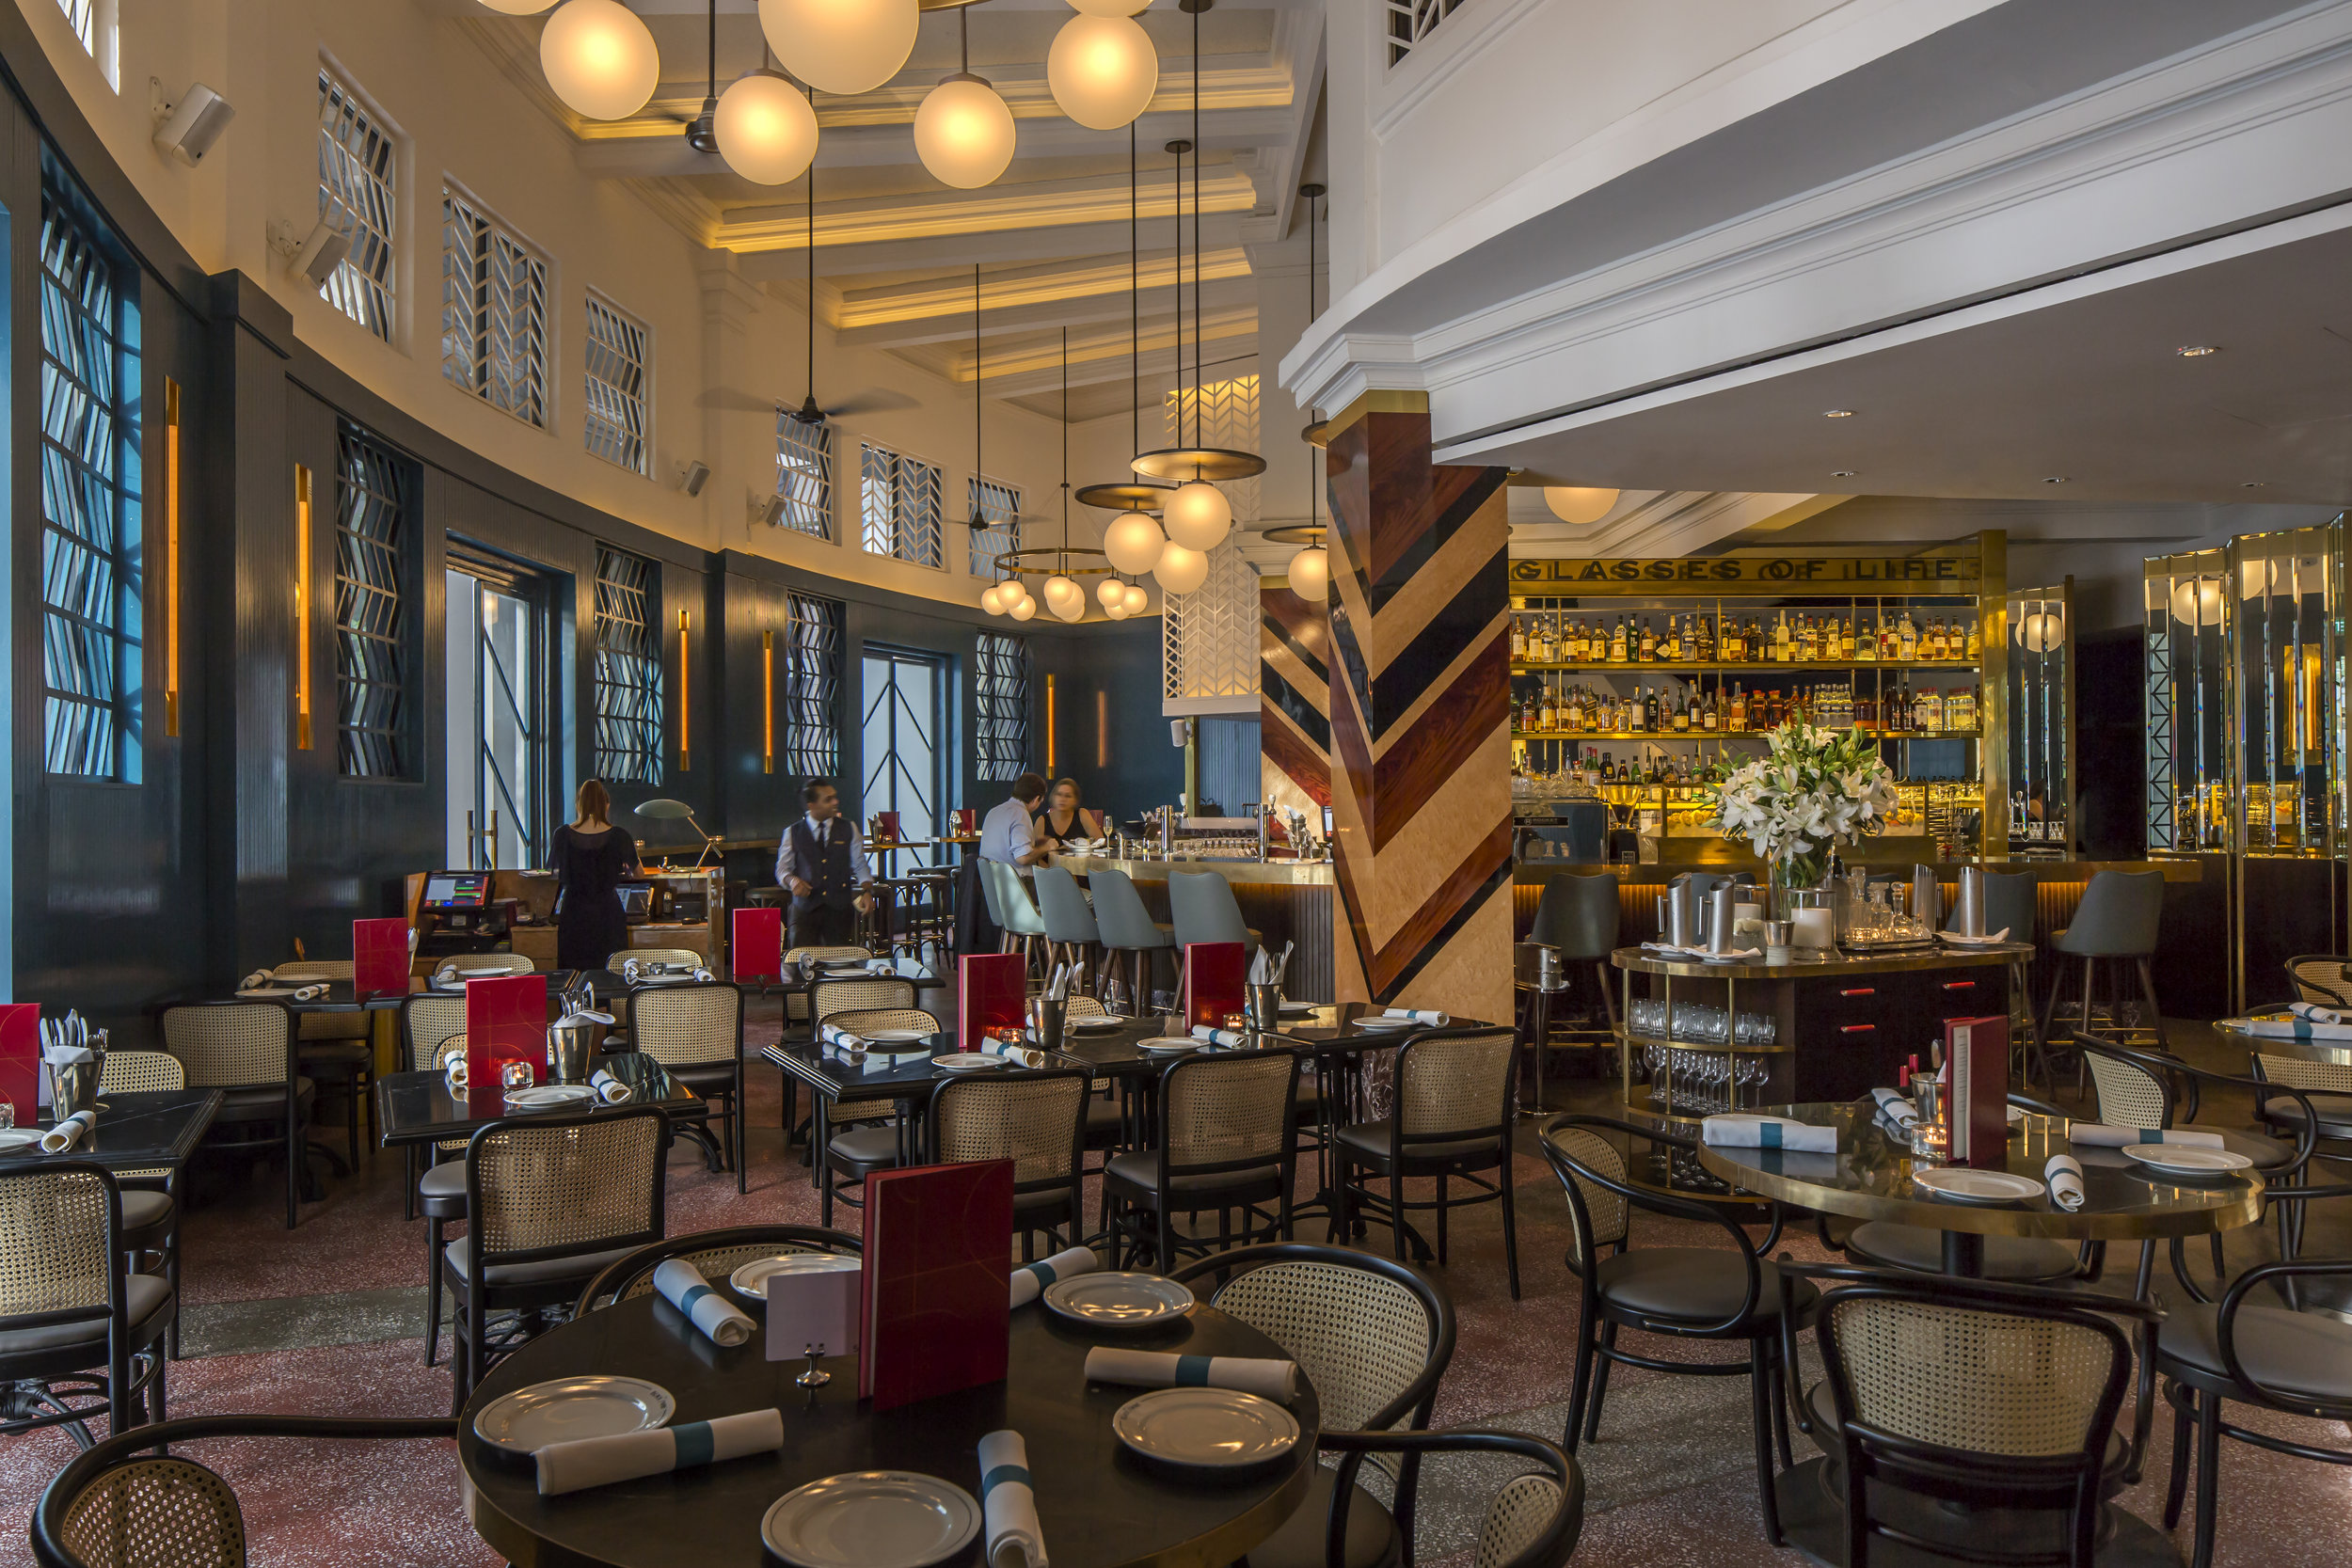 Restaurant Dining Seated: 63  |  Standing: 100